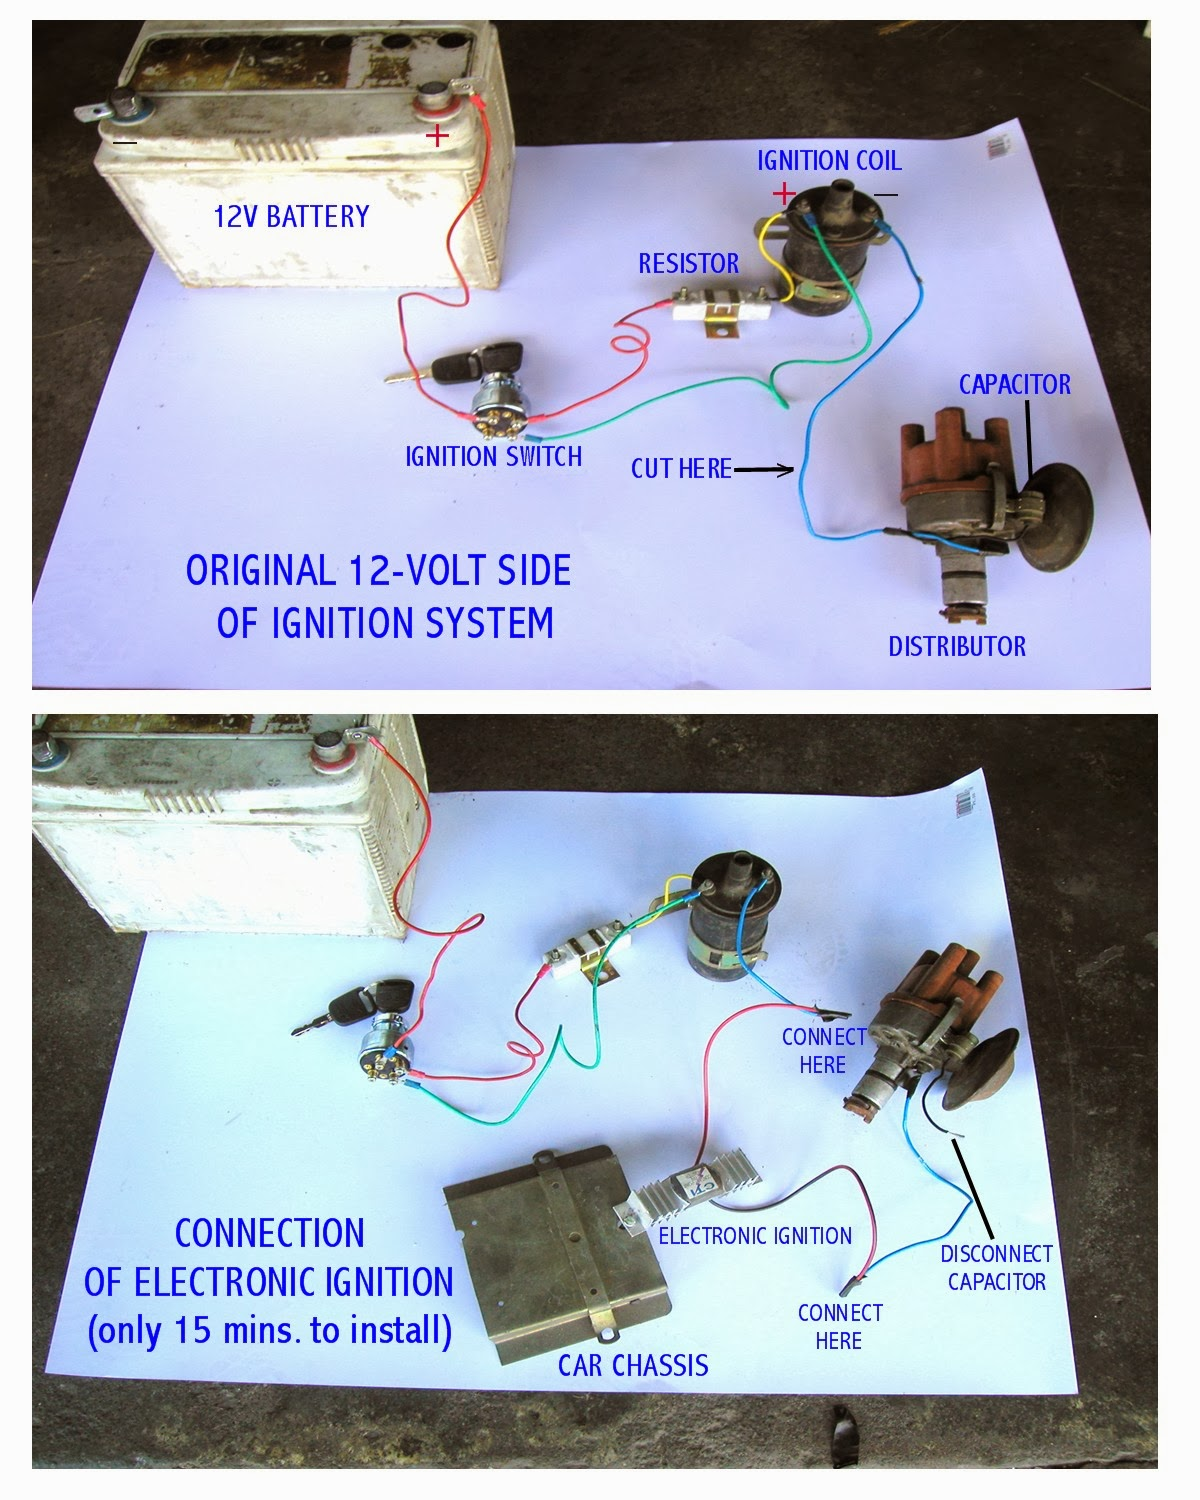 IGNITION+DIAGRAMJPEGRESIZE technology december 2013 toyota tamaraw fx electrical wiring diagram at alyssarenee.co